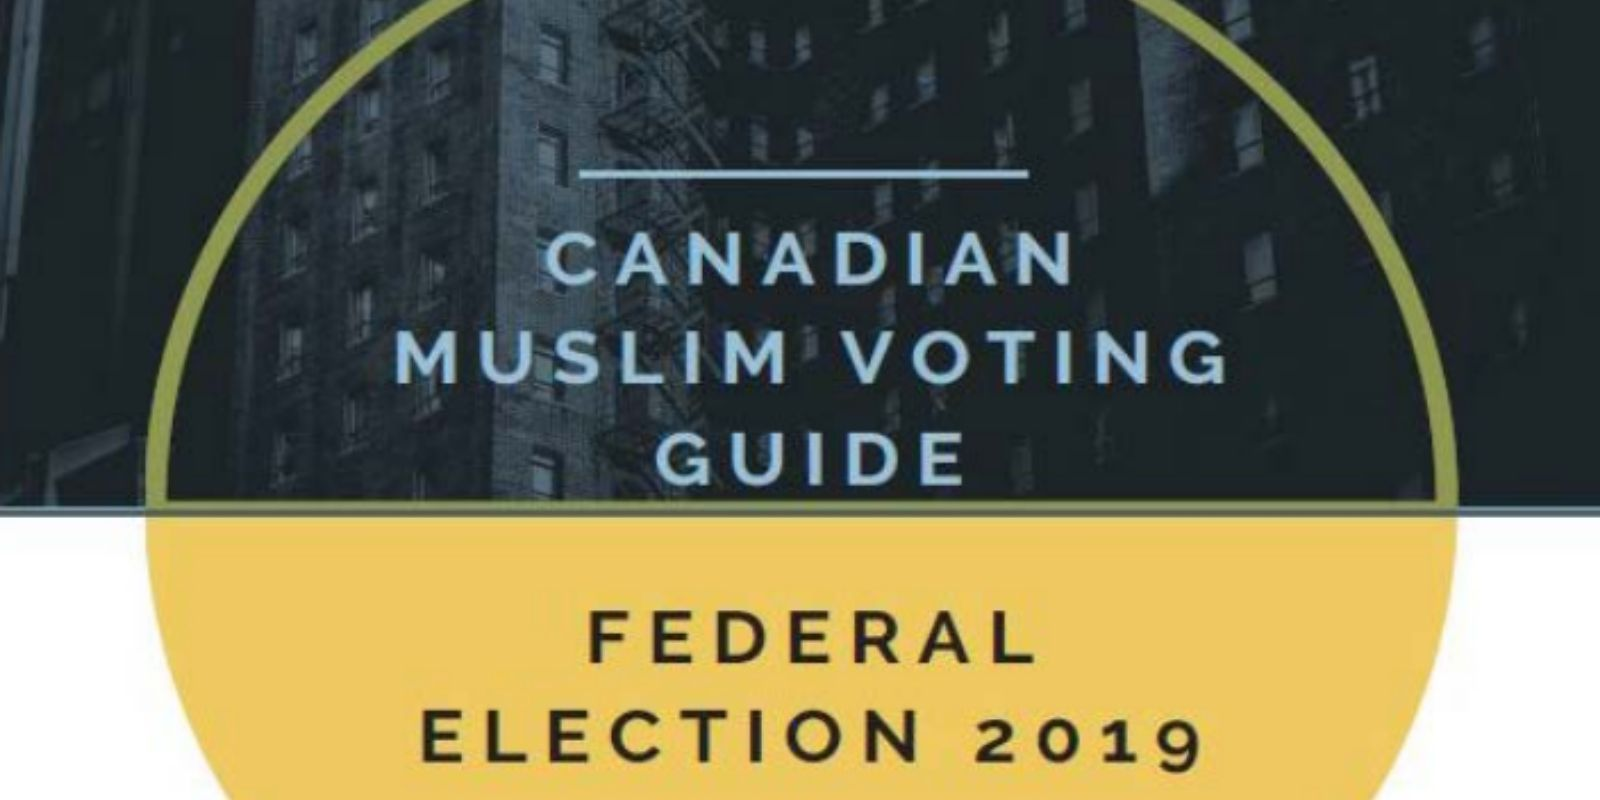 Canadian government funded 'Muslim voting guide'